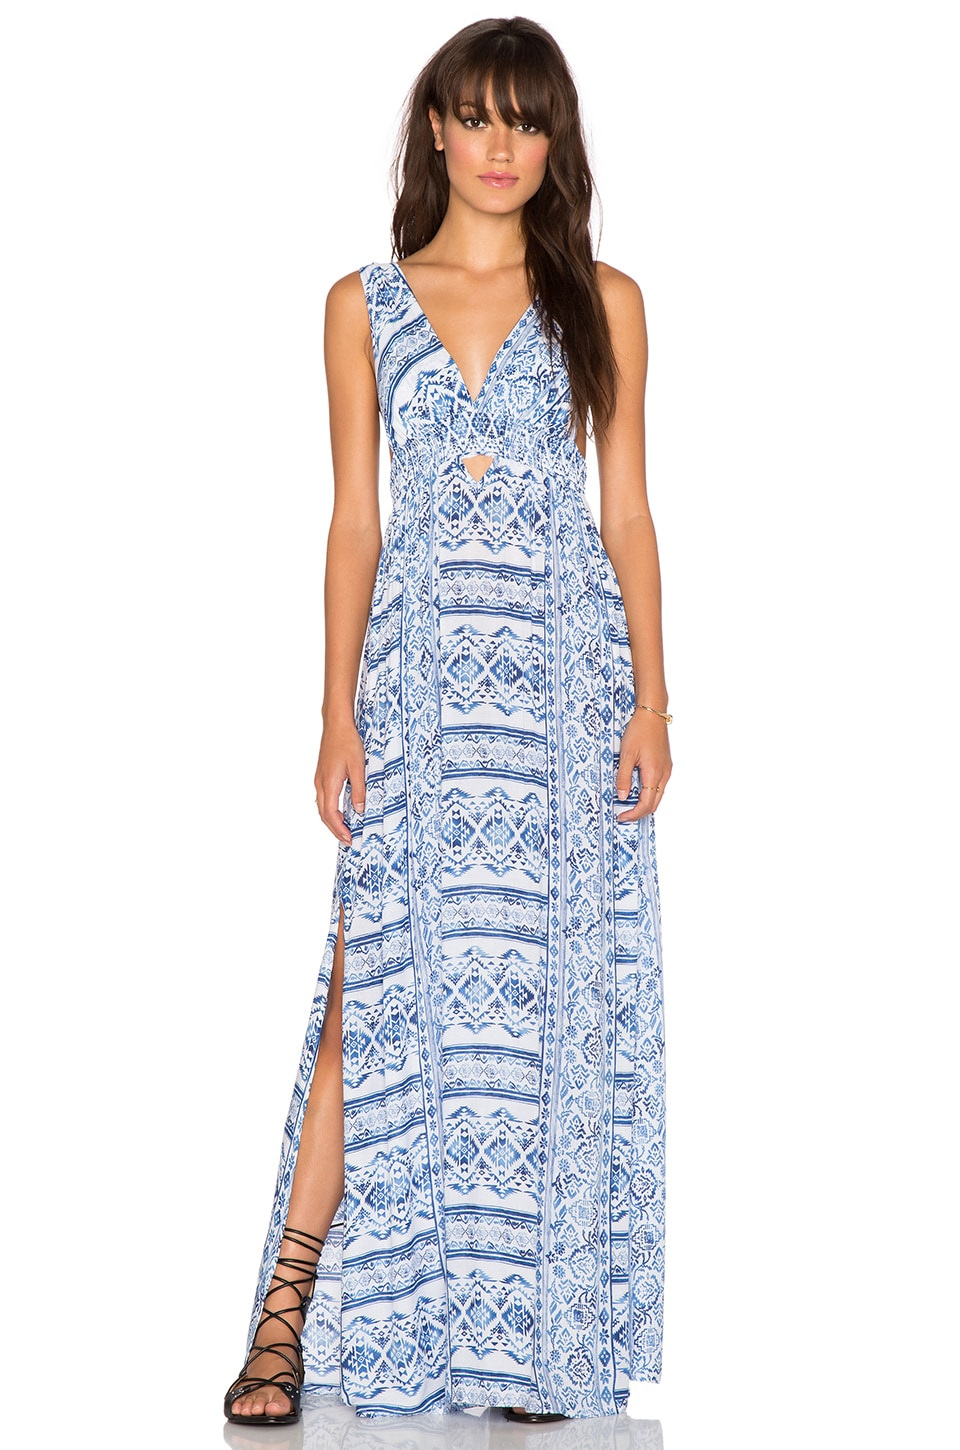 Surf Gypsy Tribal Print Cutout Maxi Dress in White Royal